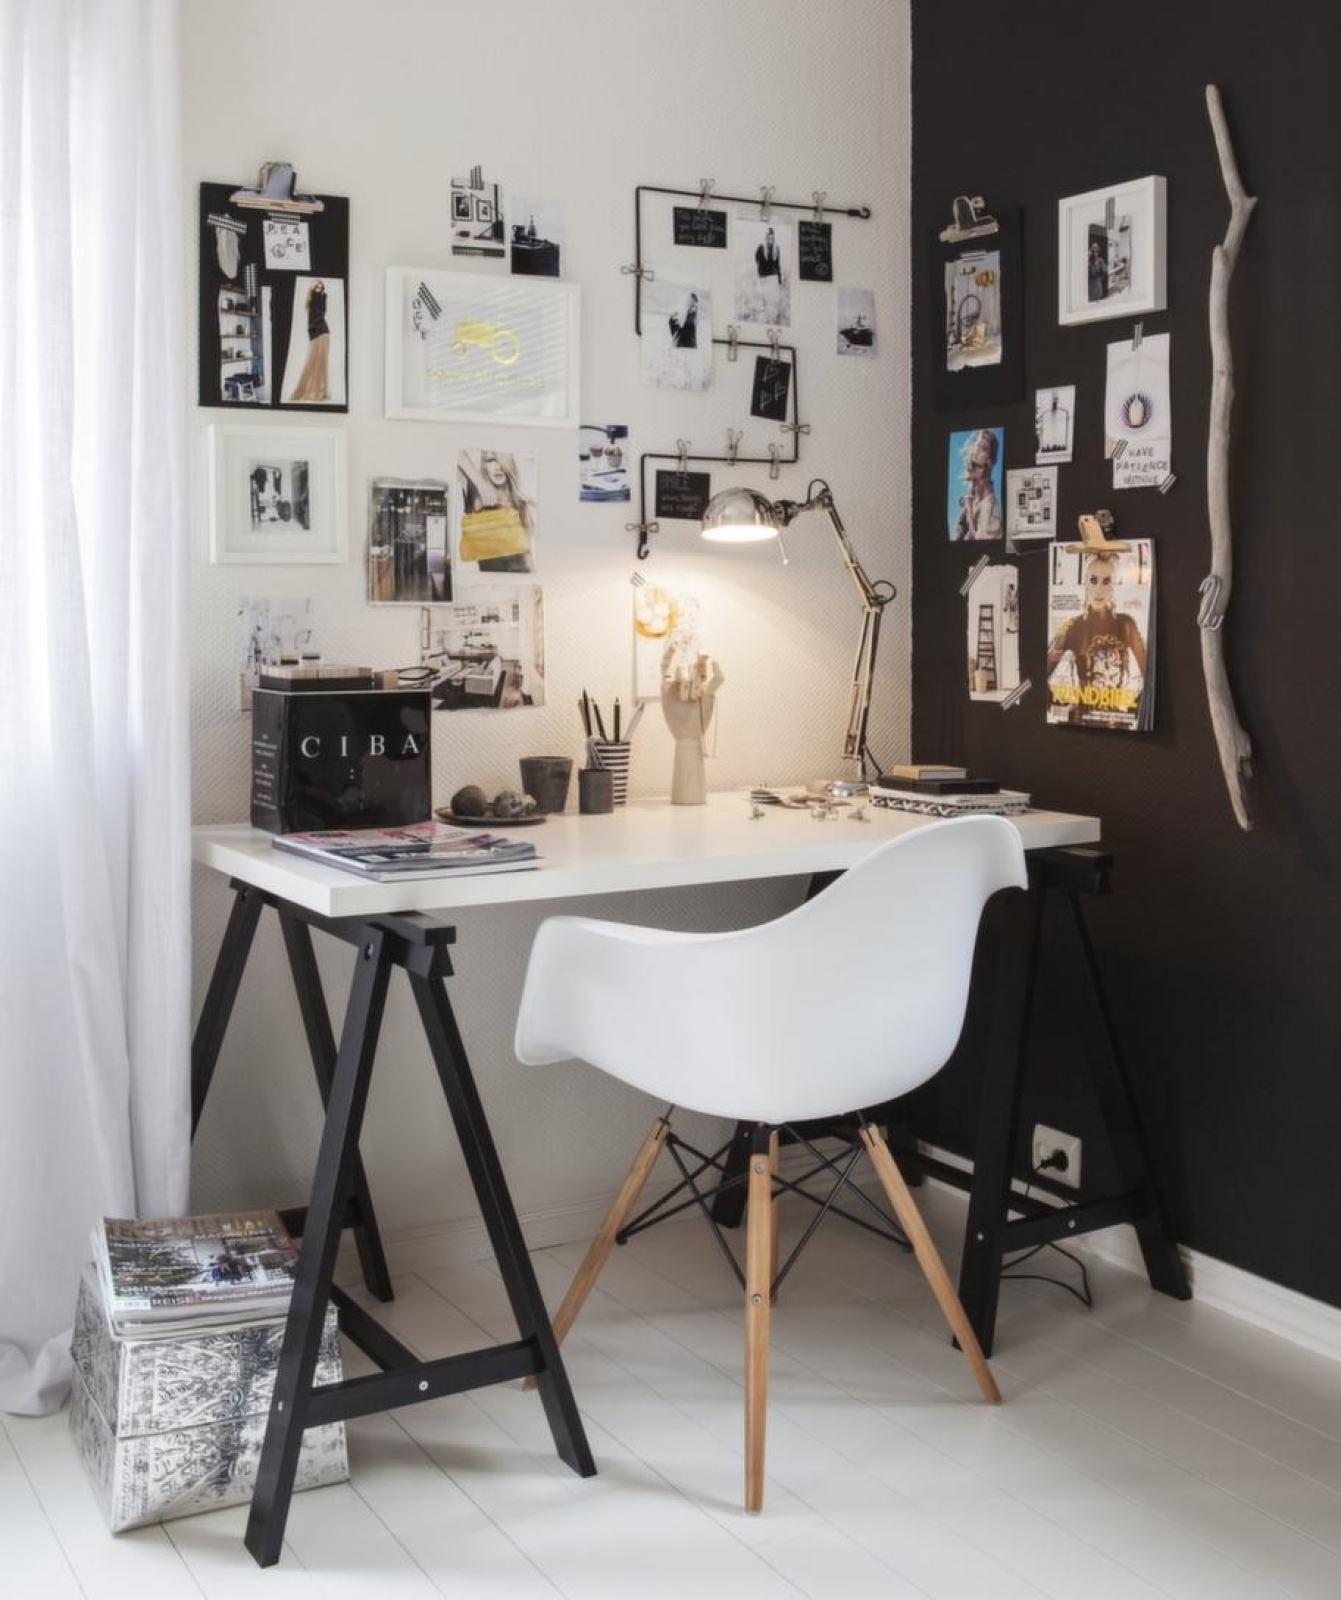 18 Impressive Home Office Design And Decor Ideas